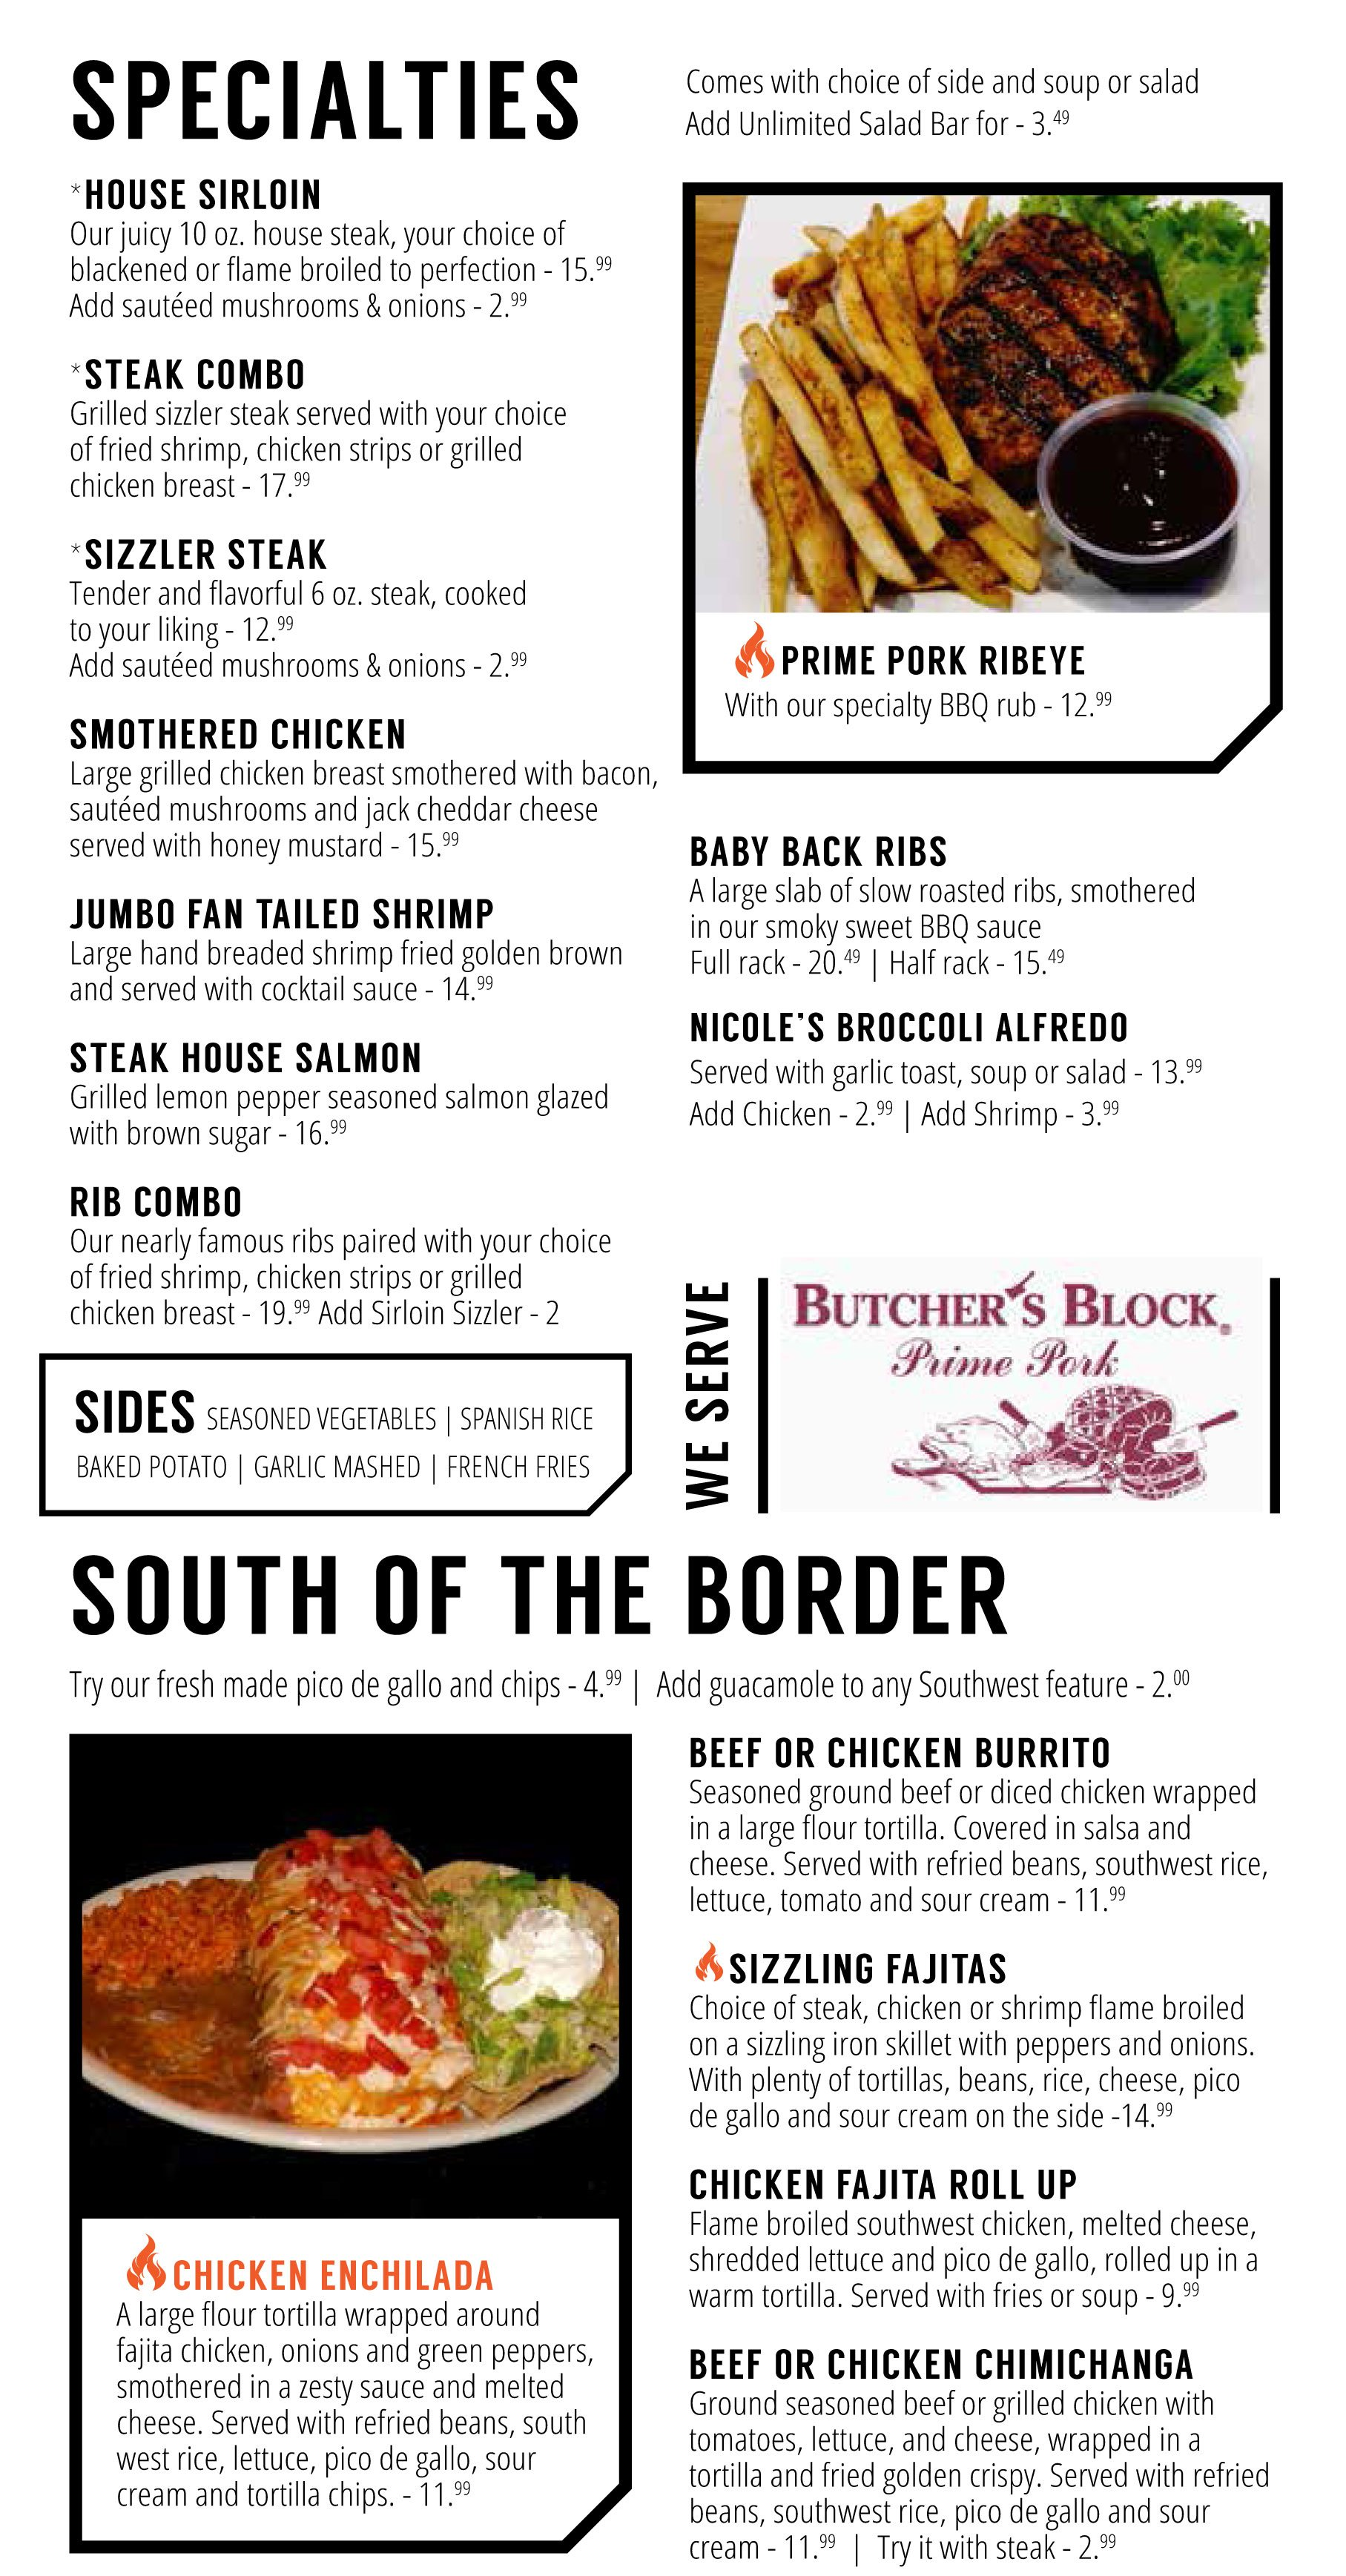 SPECIALTIES & SOUTH OF THE BORDER